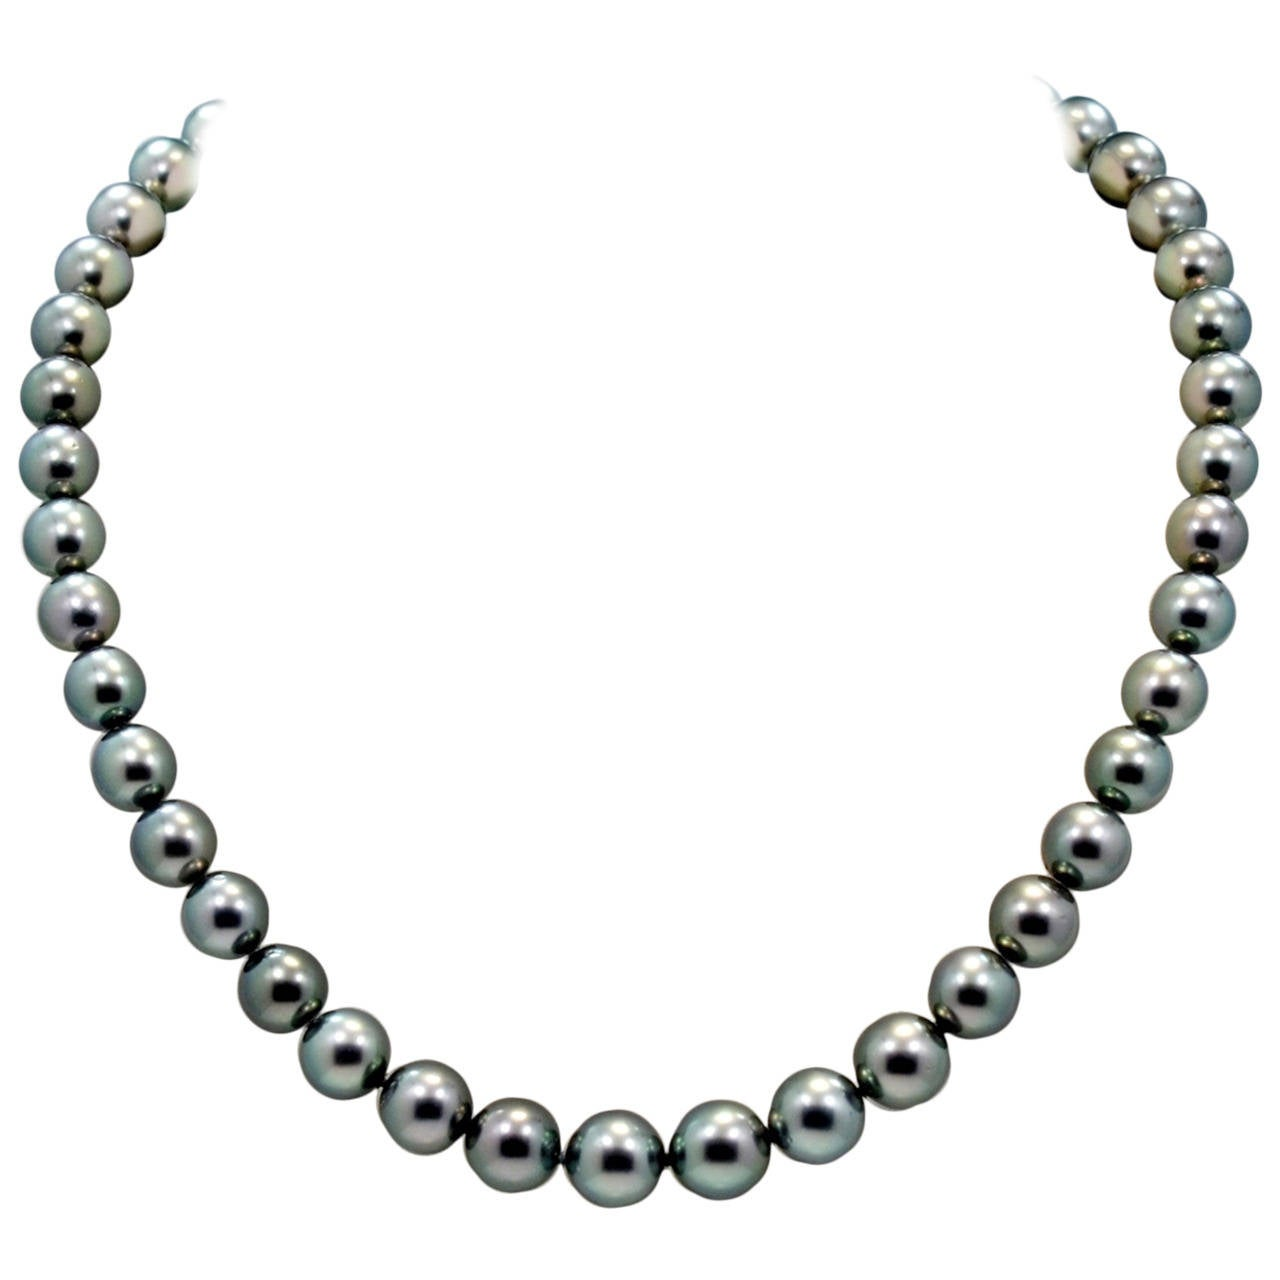 mikimoto pearls schwarzschild necklace item pearl diamond and